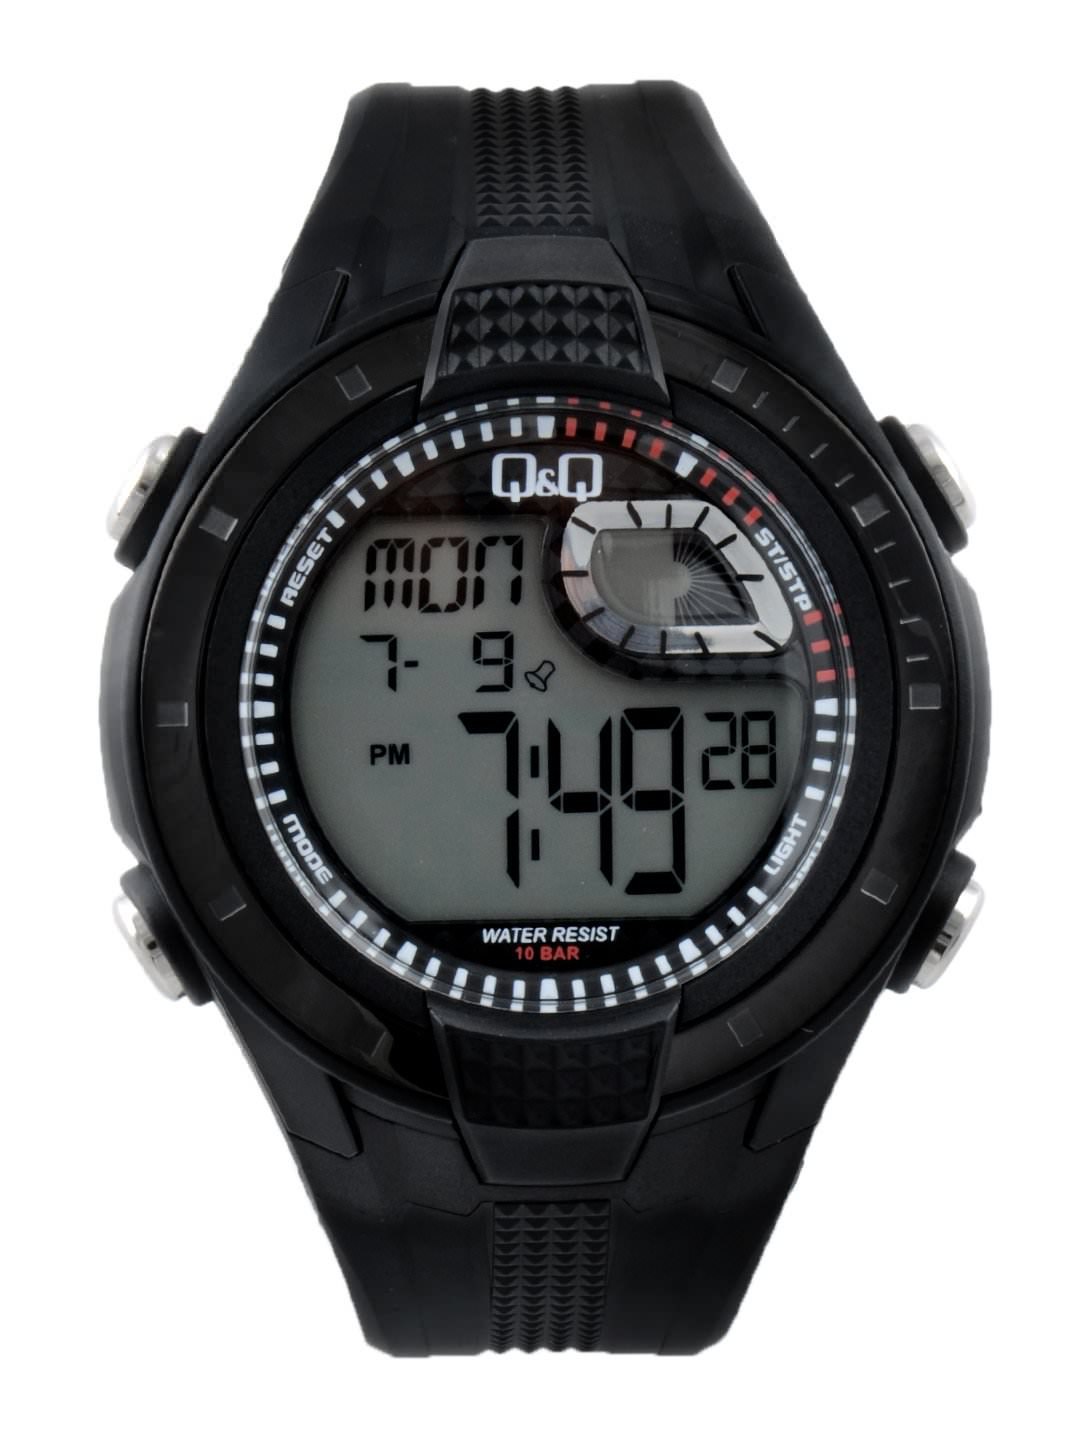 Q&Q men Digital watches at Rs.1345